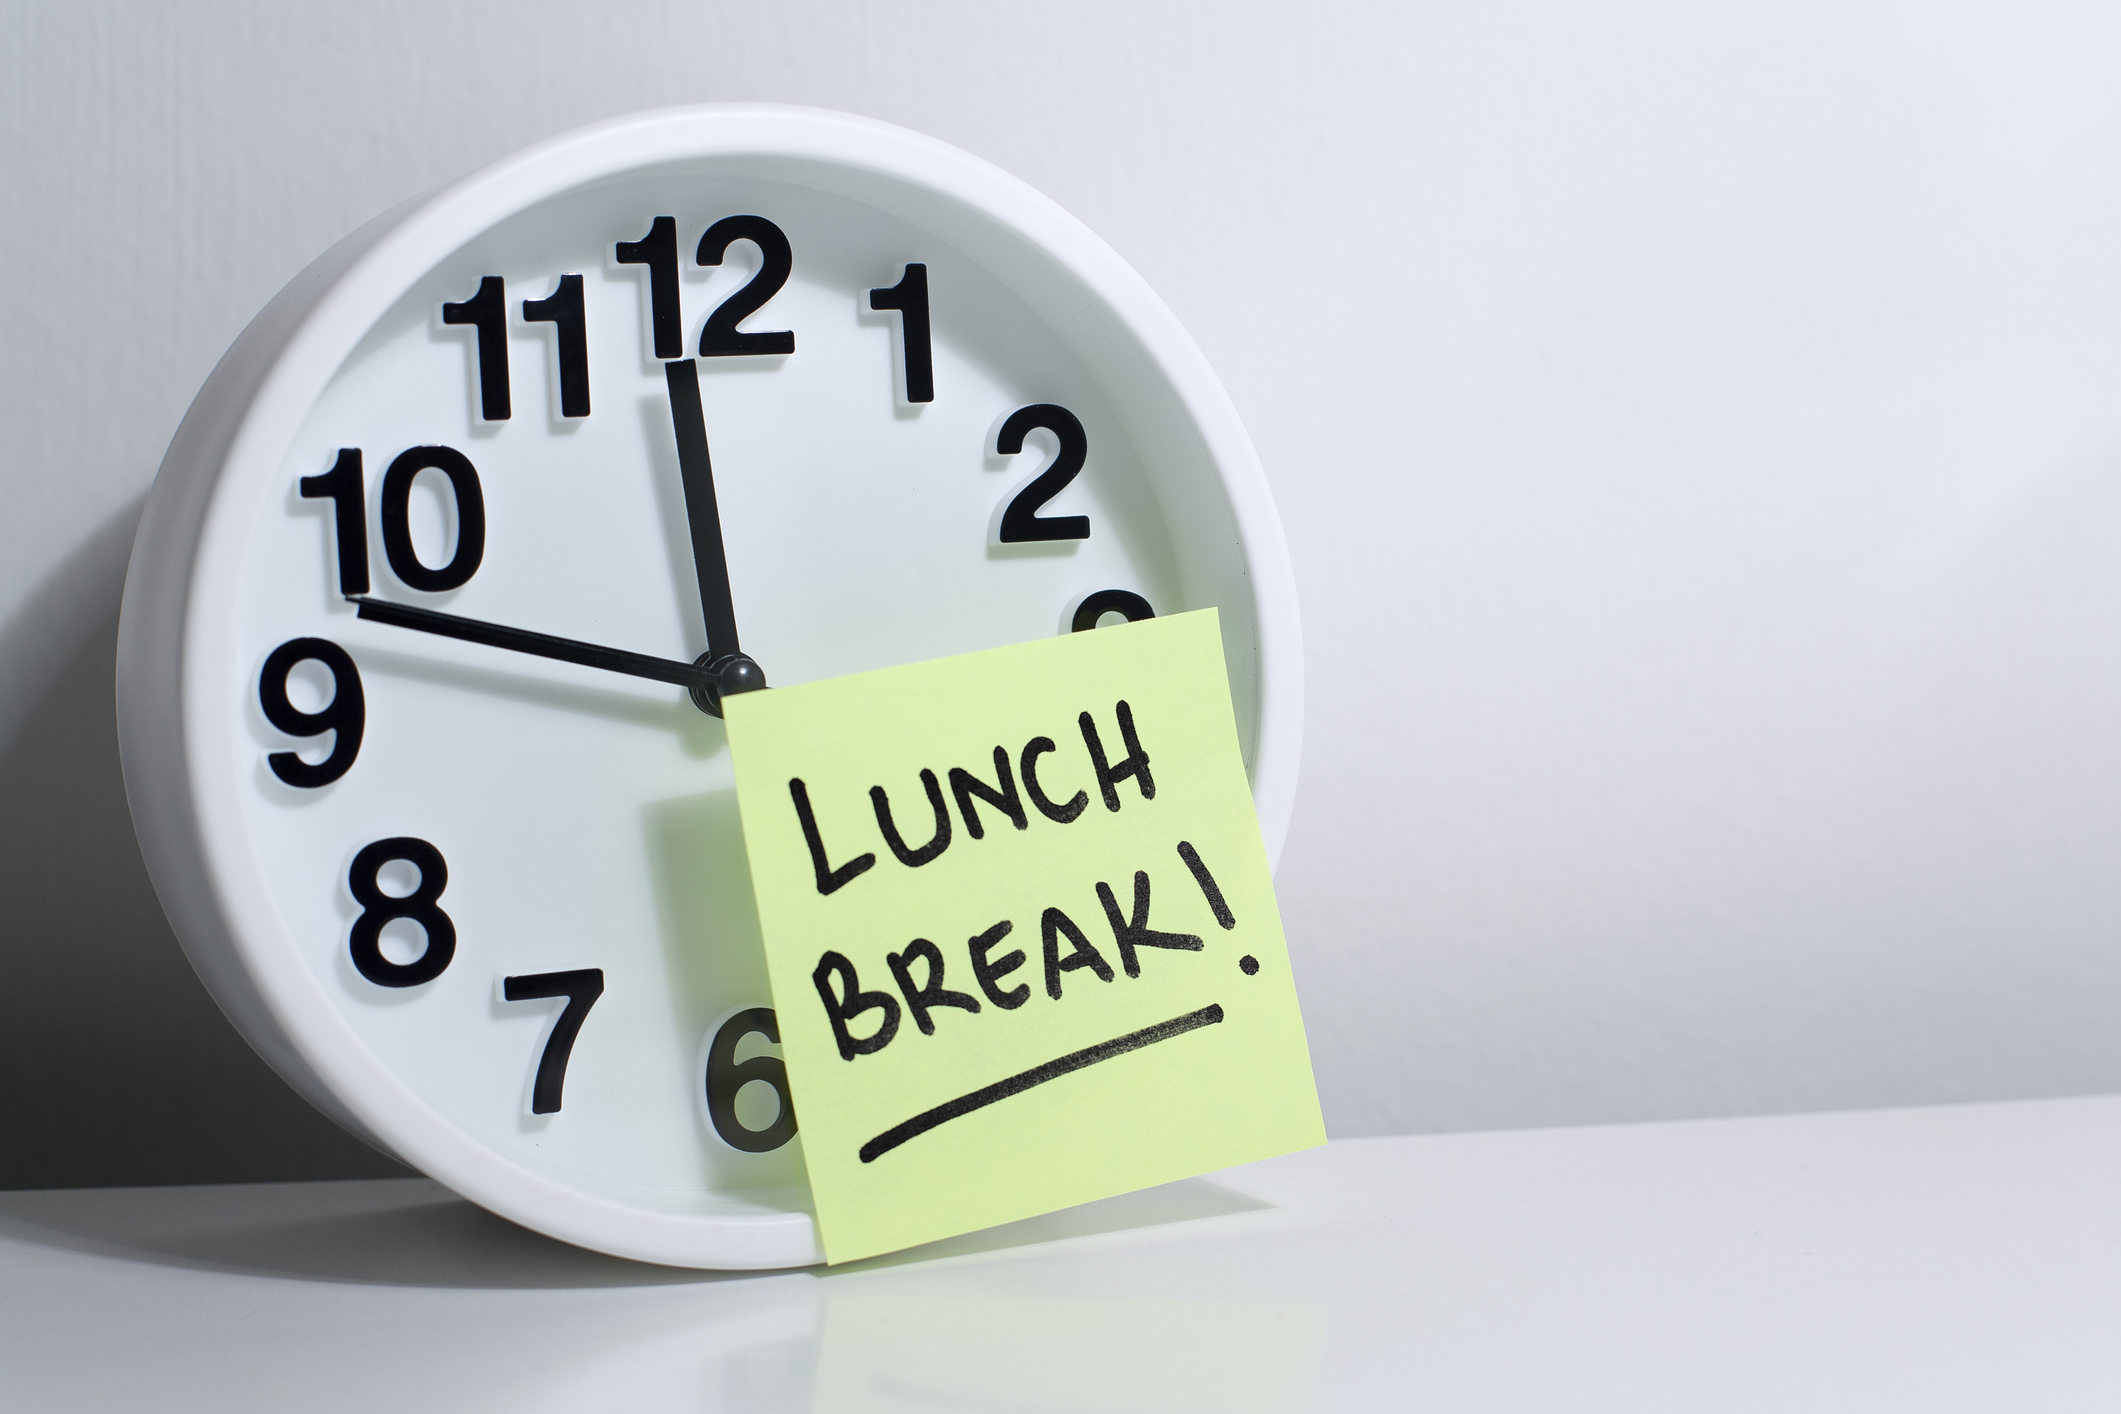 When Do You End Up Having Lunch?